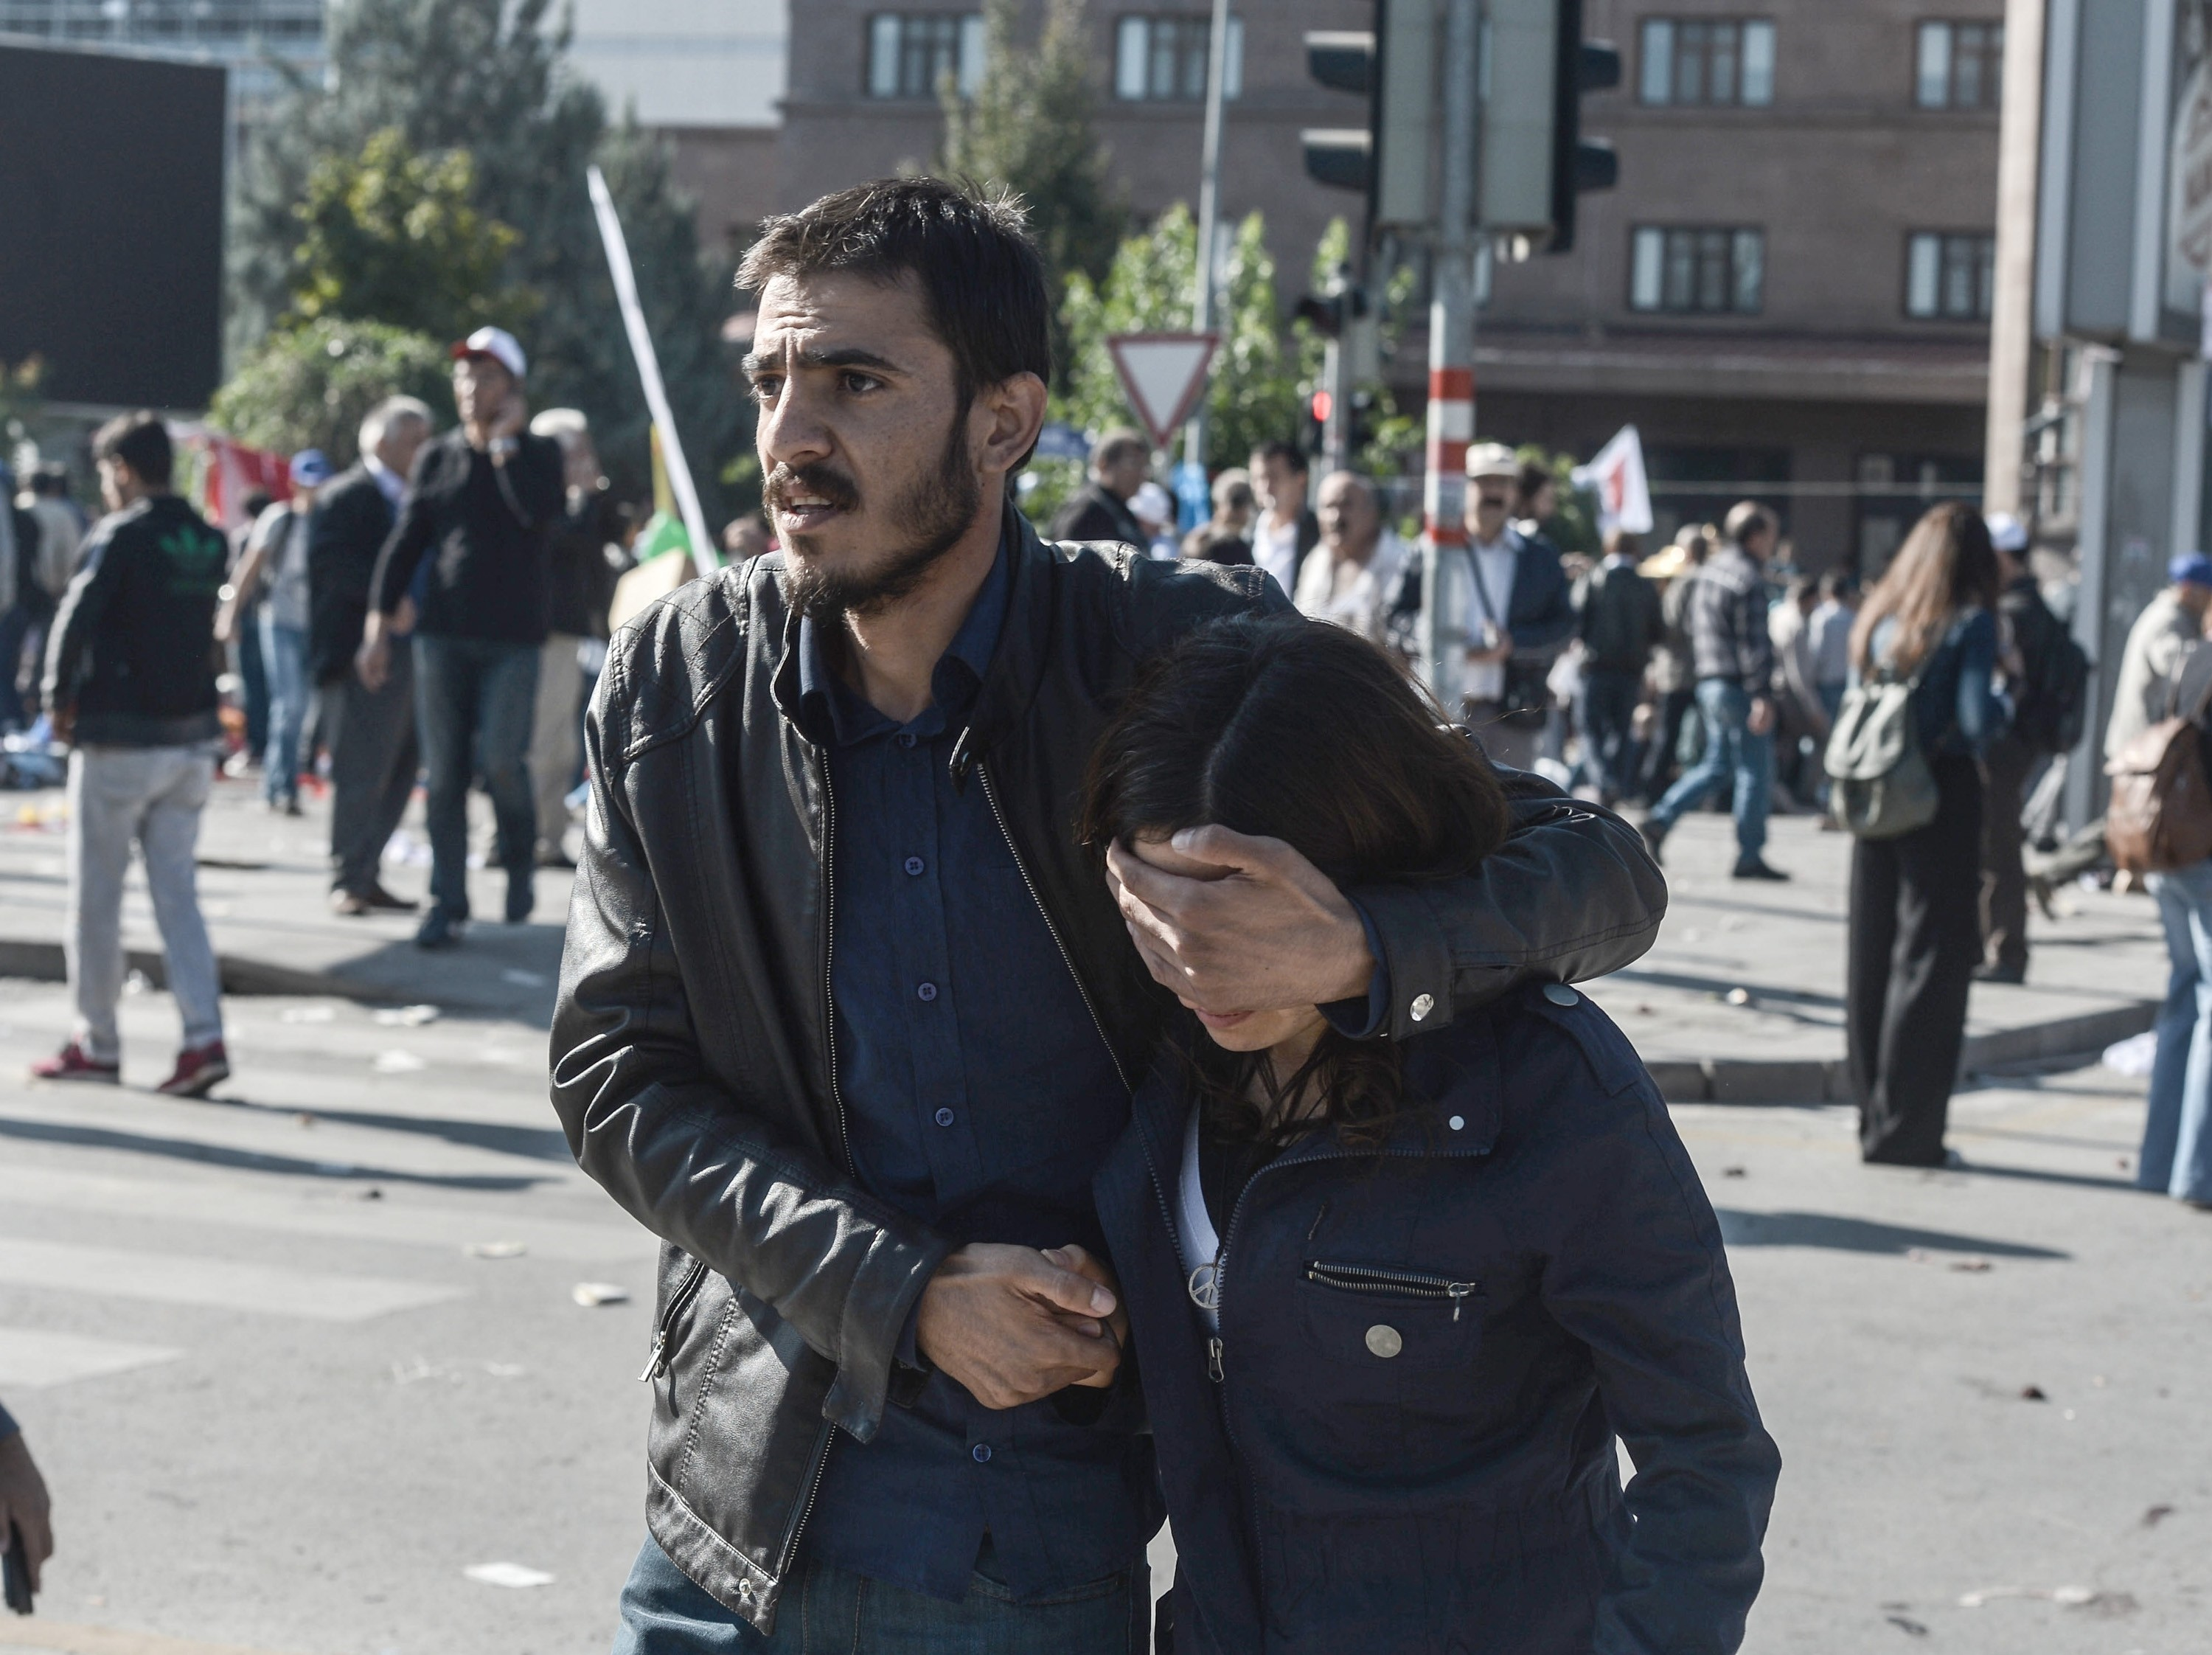 People are seen at the site of an explosion close to Ankara's main train station on Oct. 10, 2015 in Ankara, Turkey.